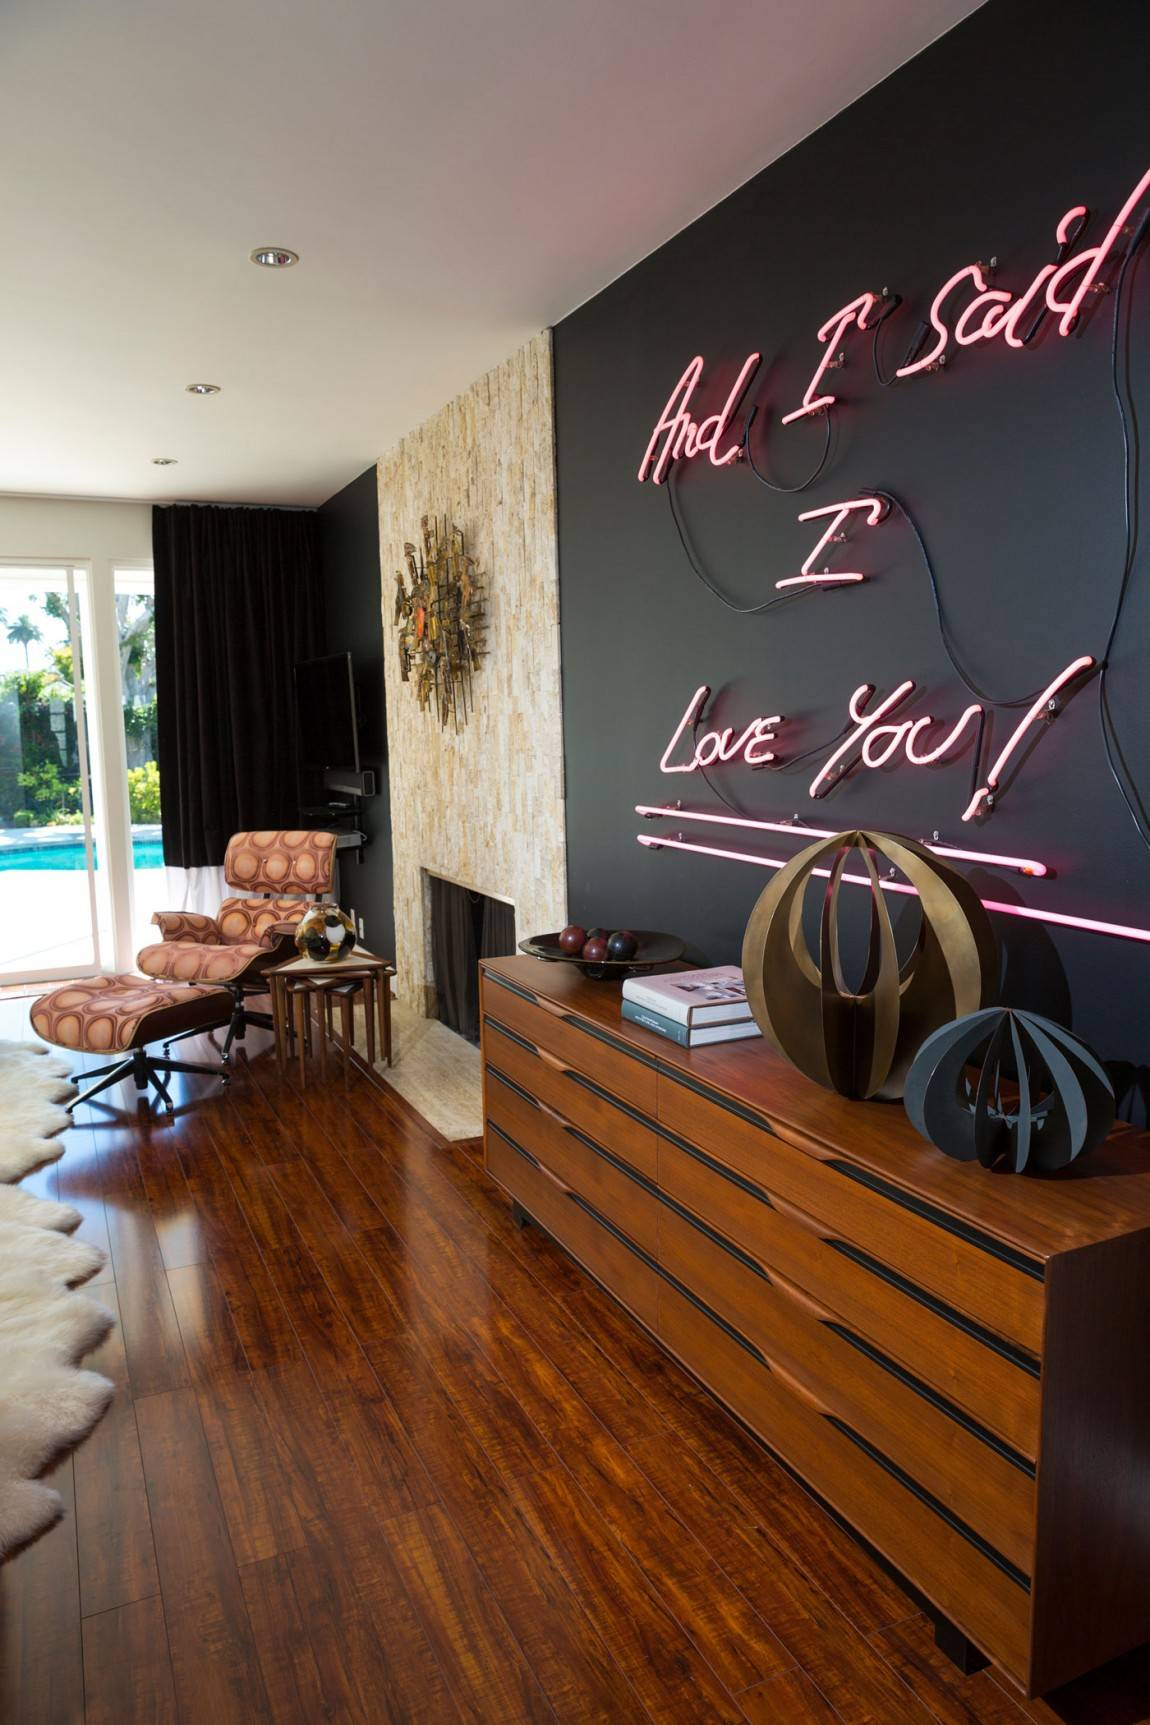 Home Decor Neon Signs Inpiration Best Of Daring Home Decor Neon Lights for Every Room